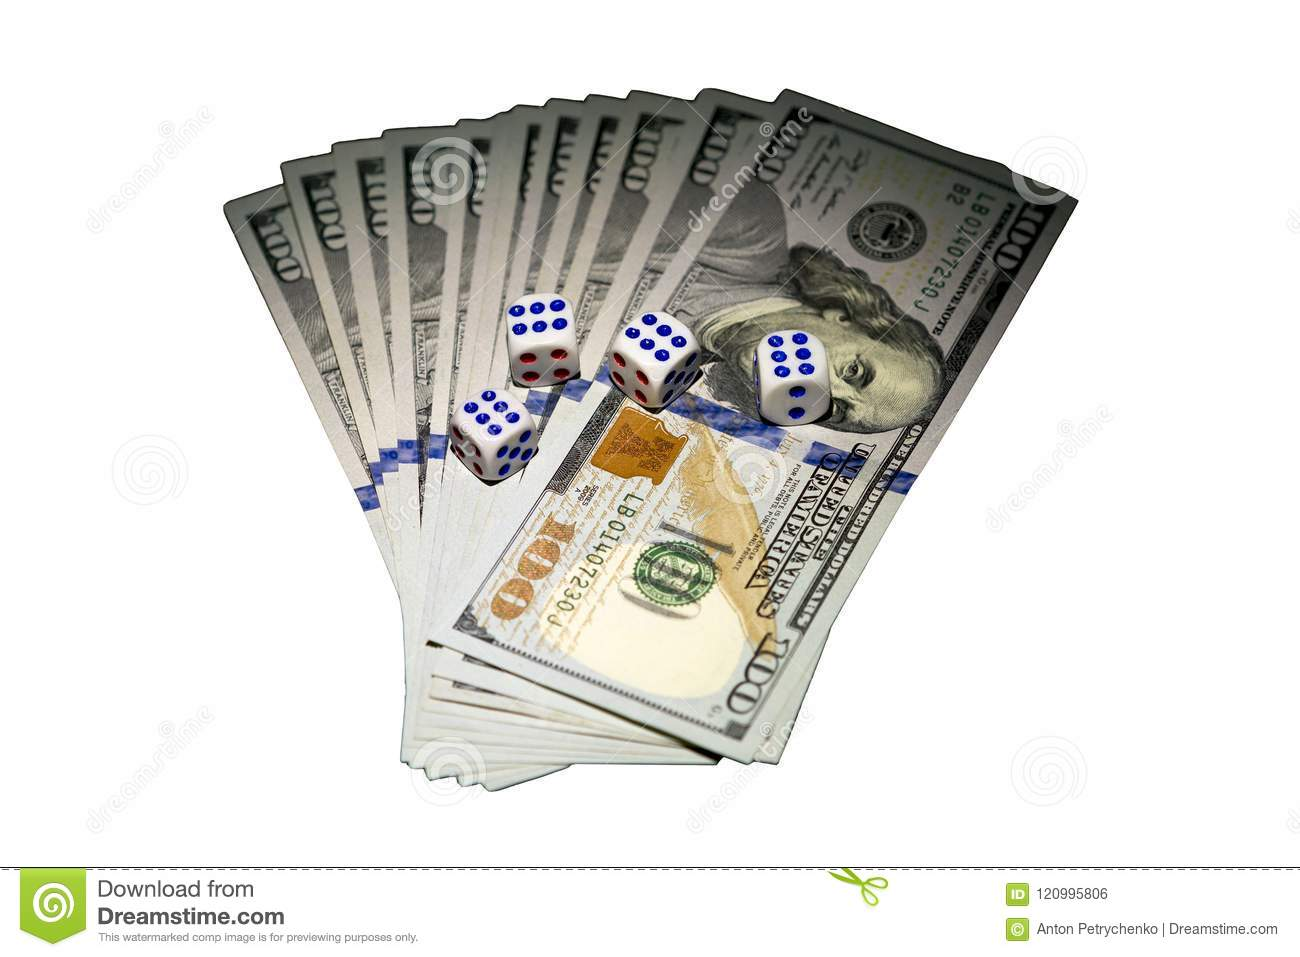 The Concept Of Dice Dollars And Dice On The Dice Fell